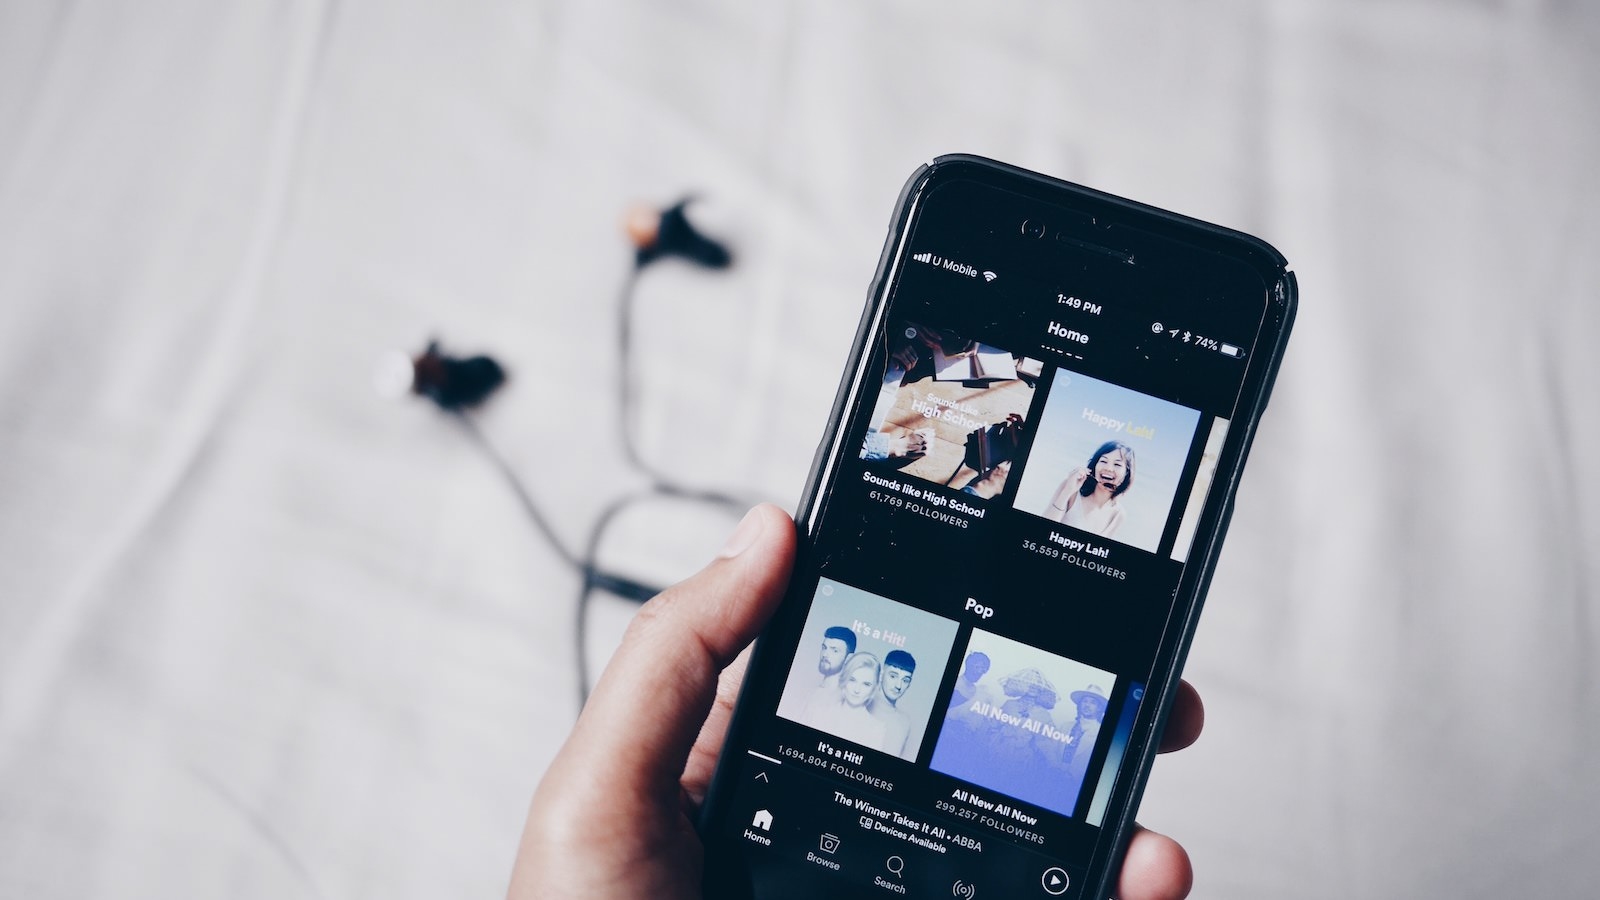 Jean 678055 unsplash spotify on iphone